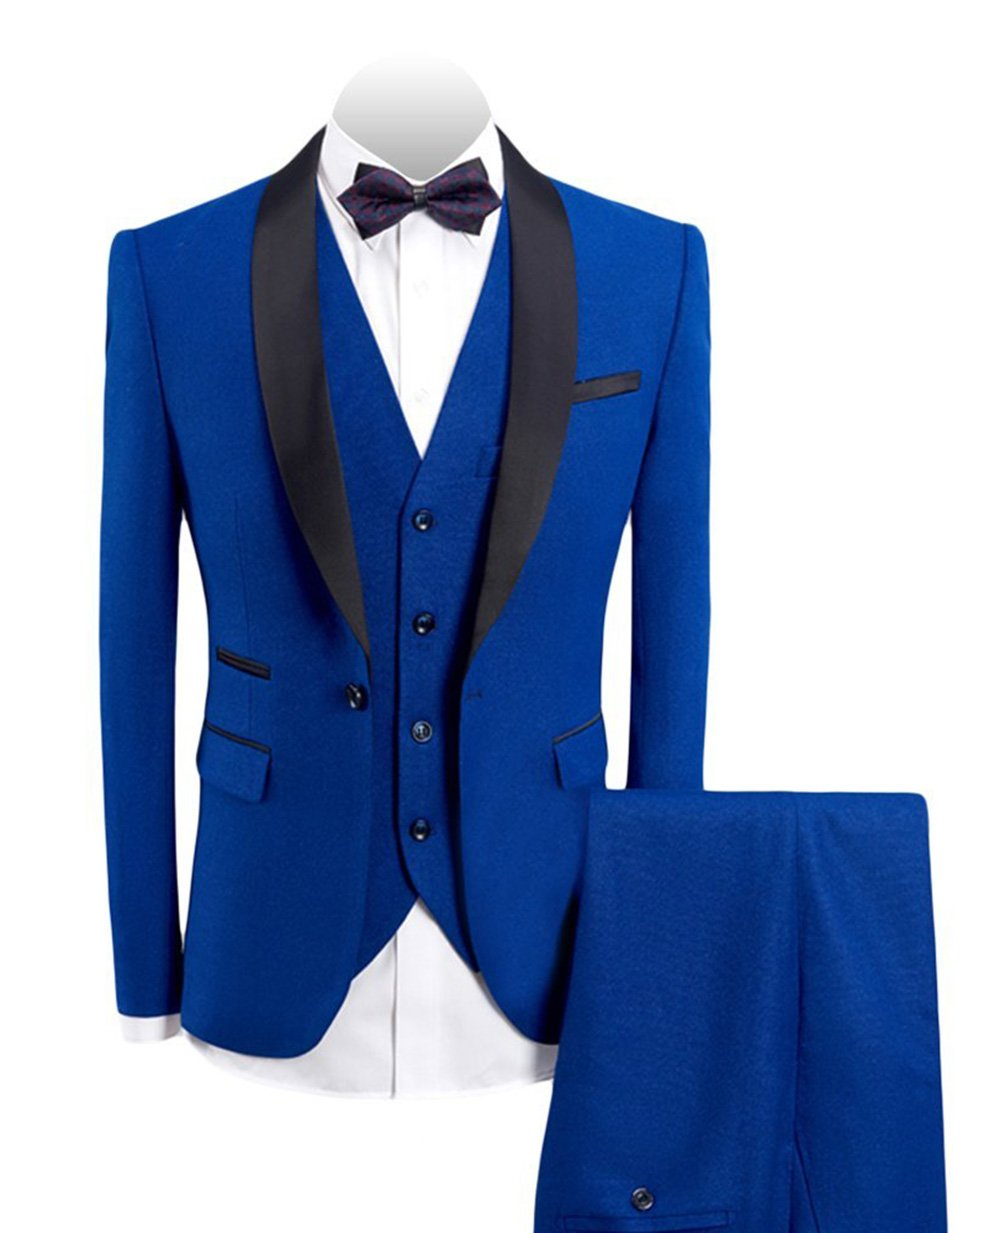 Fitty Lell Men's 3-Pieces Suit Shawl Lapel One Button Blazer Vested Dress Suit Set Groom Tuxedo(40 Regular,Royal Blue)